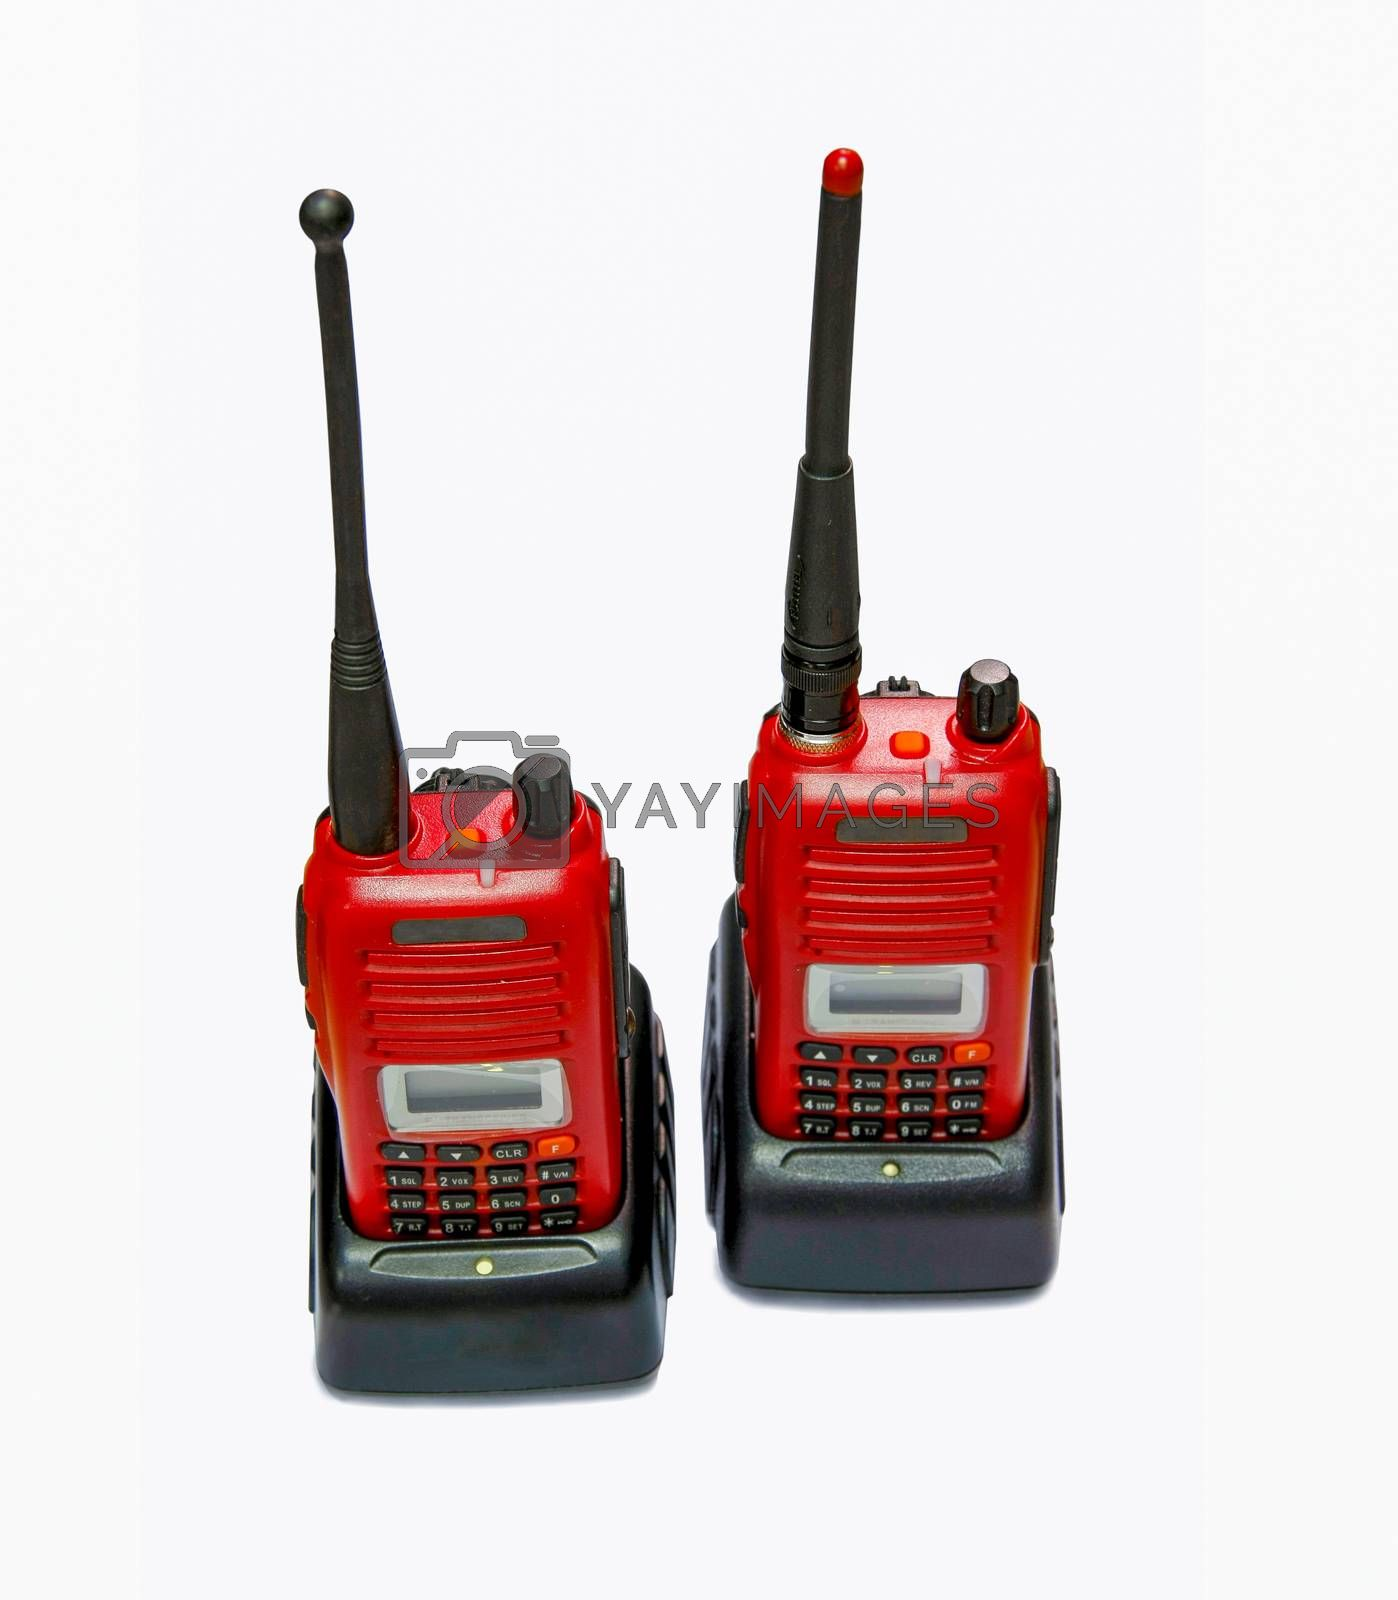 two red radio communication in chargers on white background